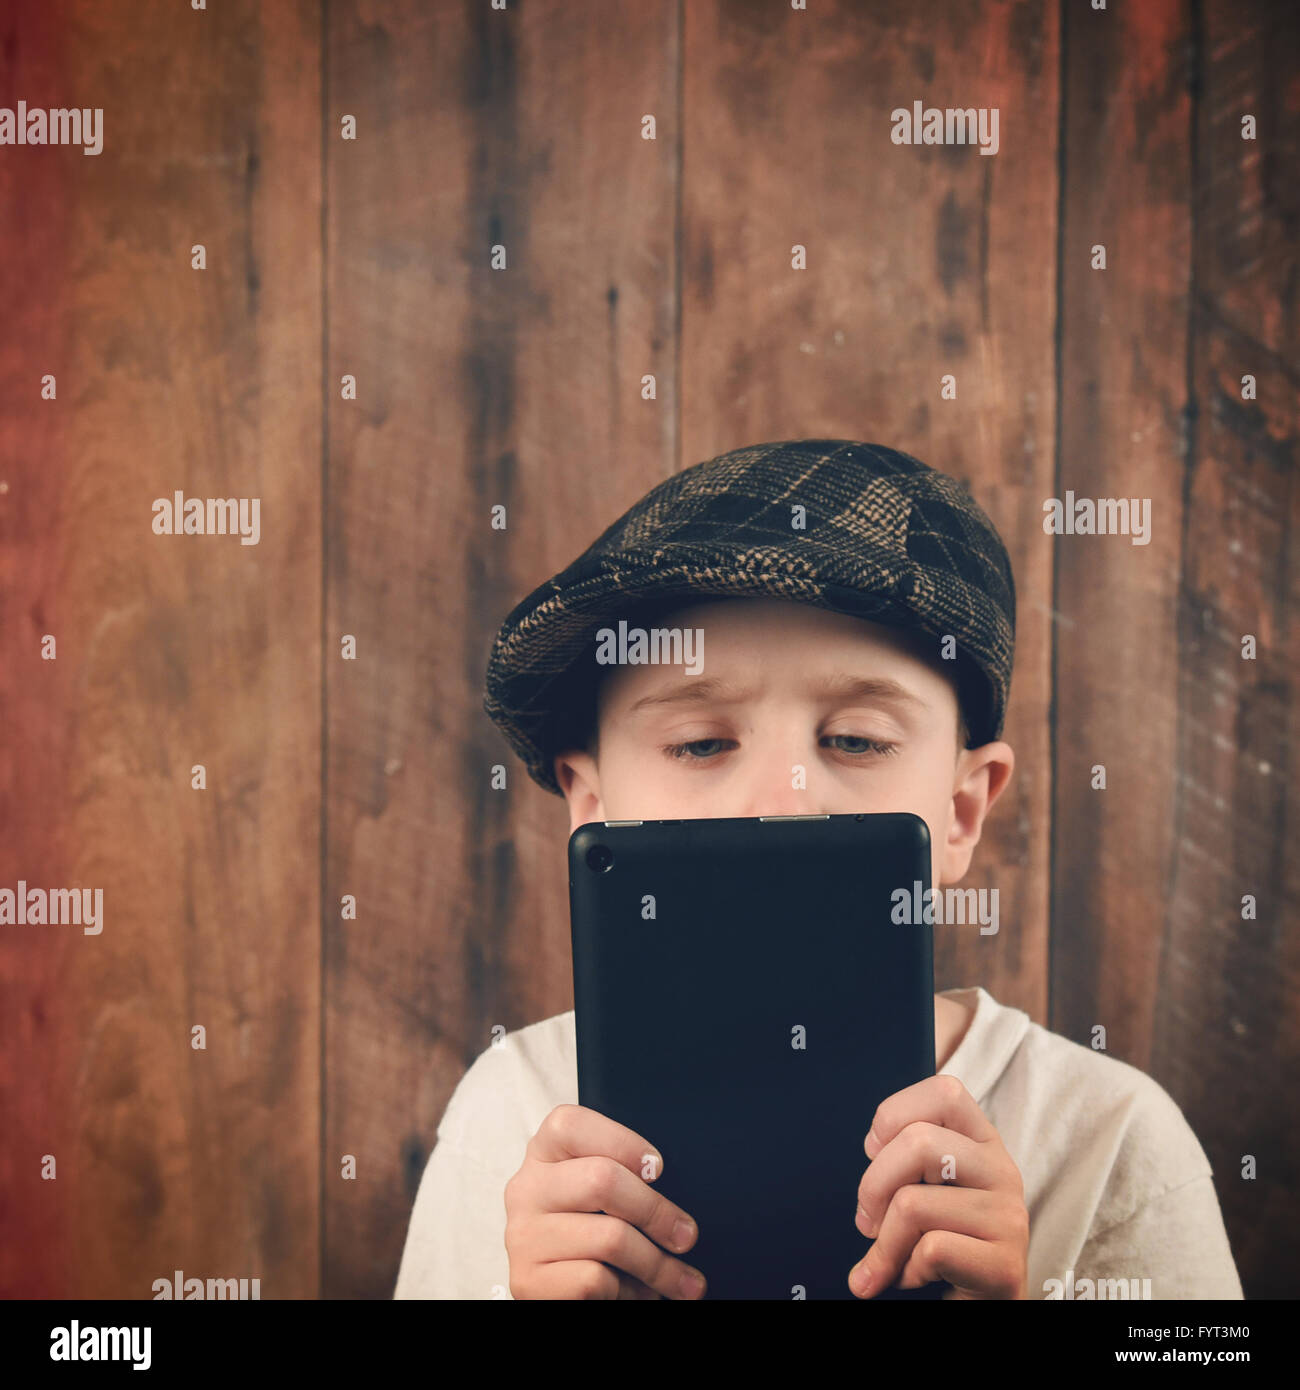 A boy is holding a technology tablet and reading a screen. The child has a vintage hat with a wood bg for communication - Stock Image